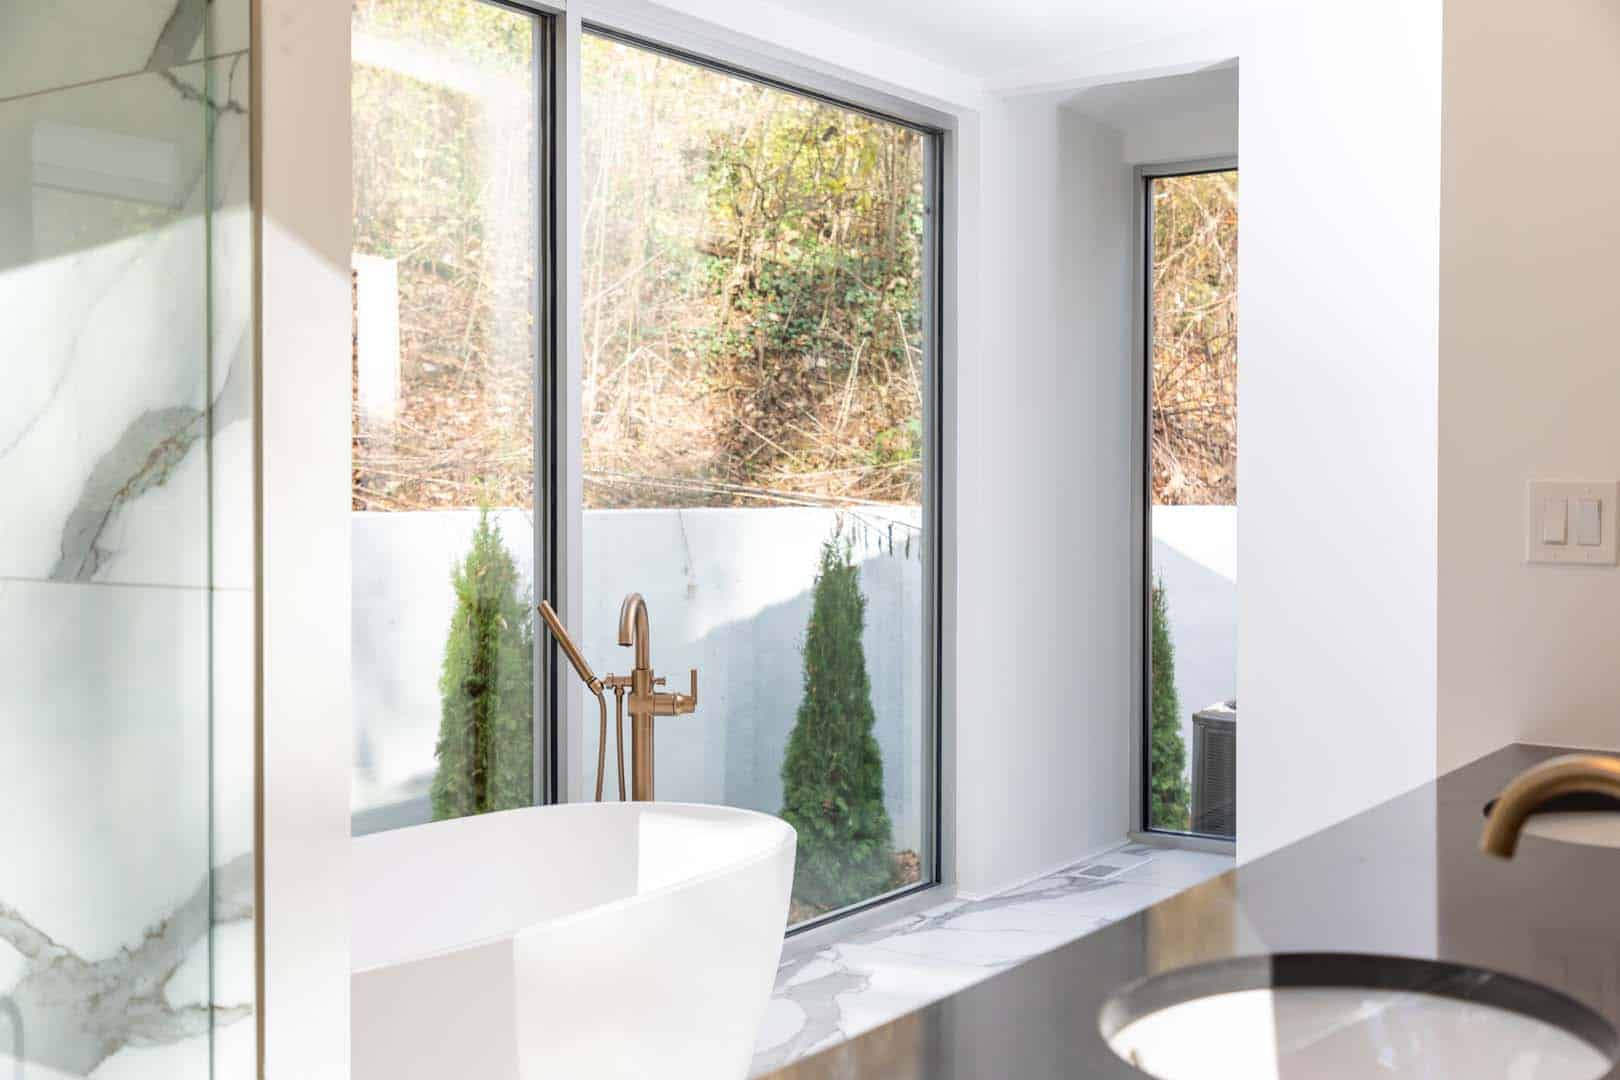 An out of focus golden faucet in the foreground with a white bathtub and large windows in focus